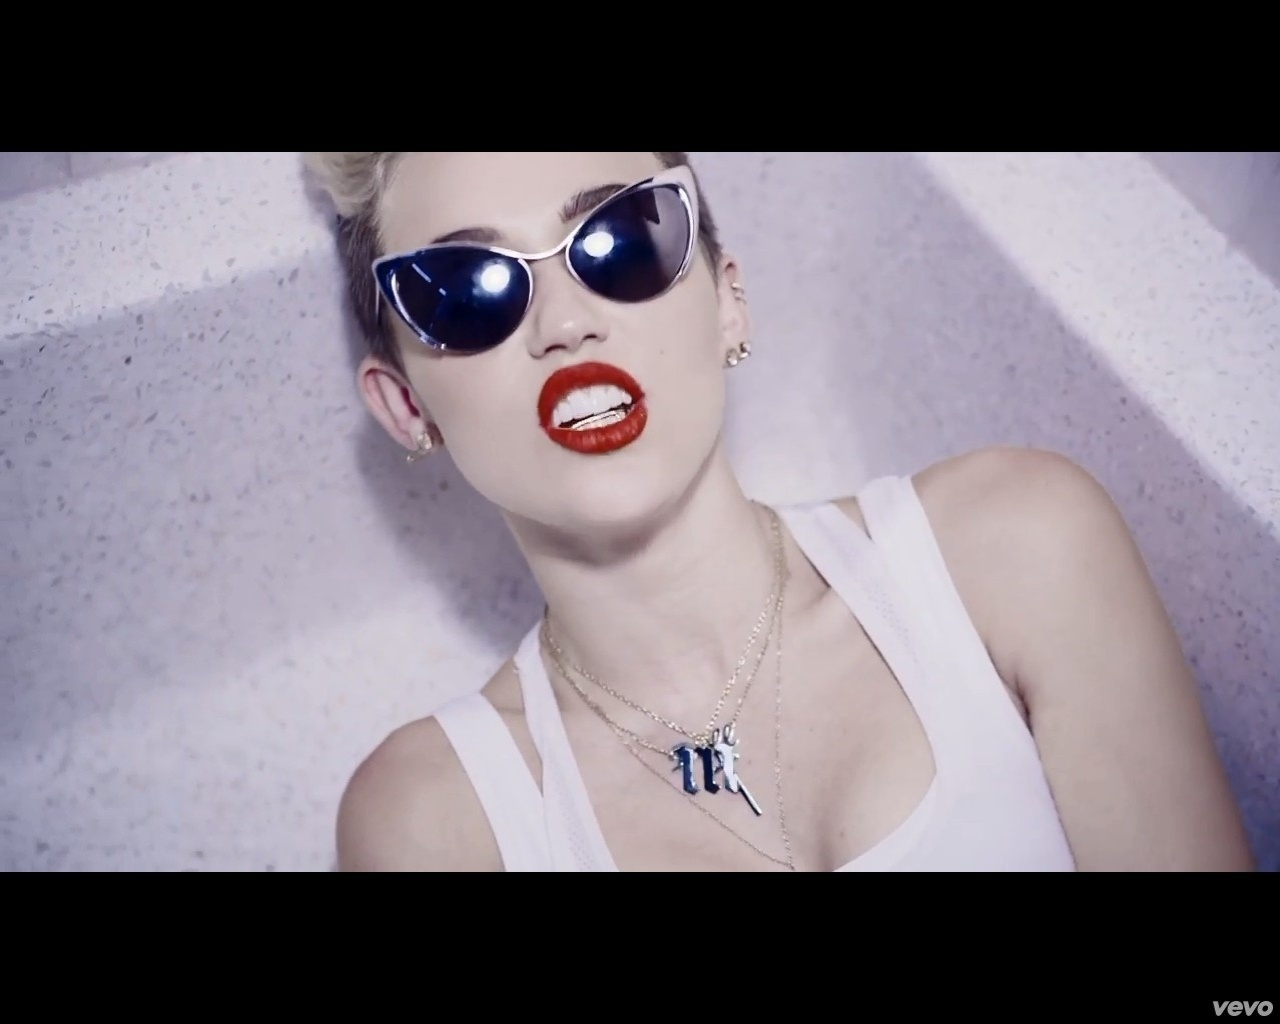 Miley Cyrus usa grillz no clipe de